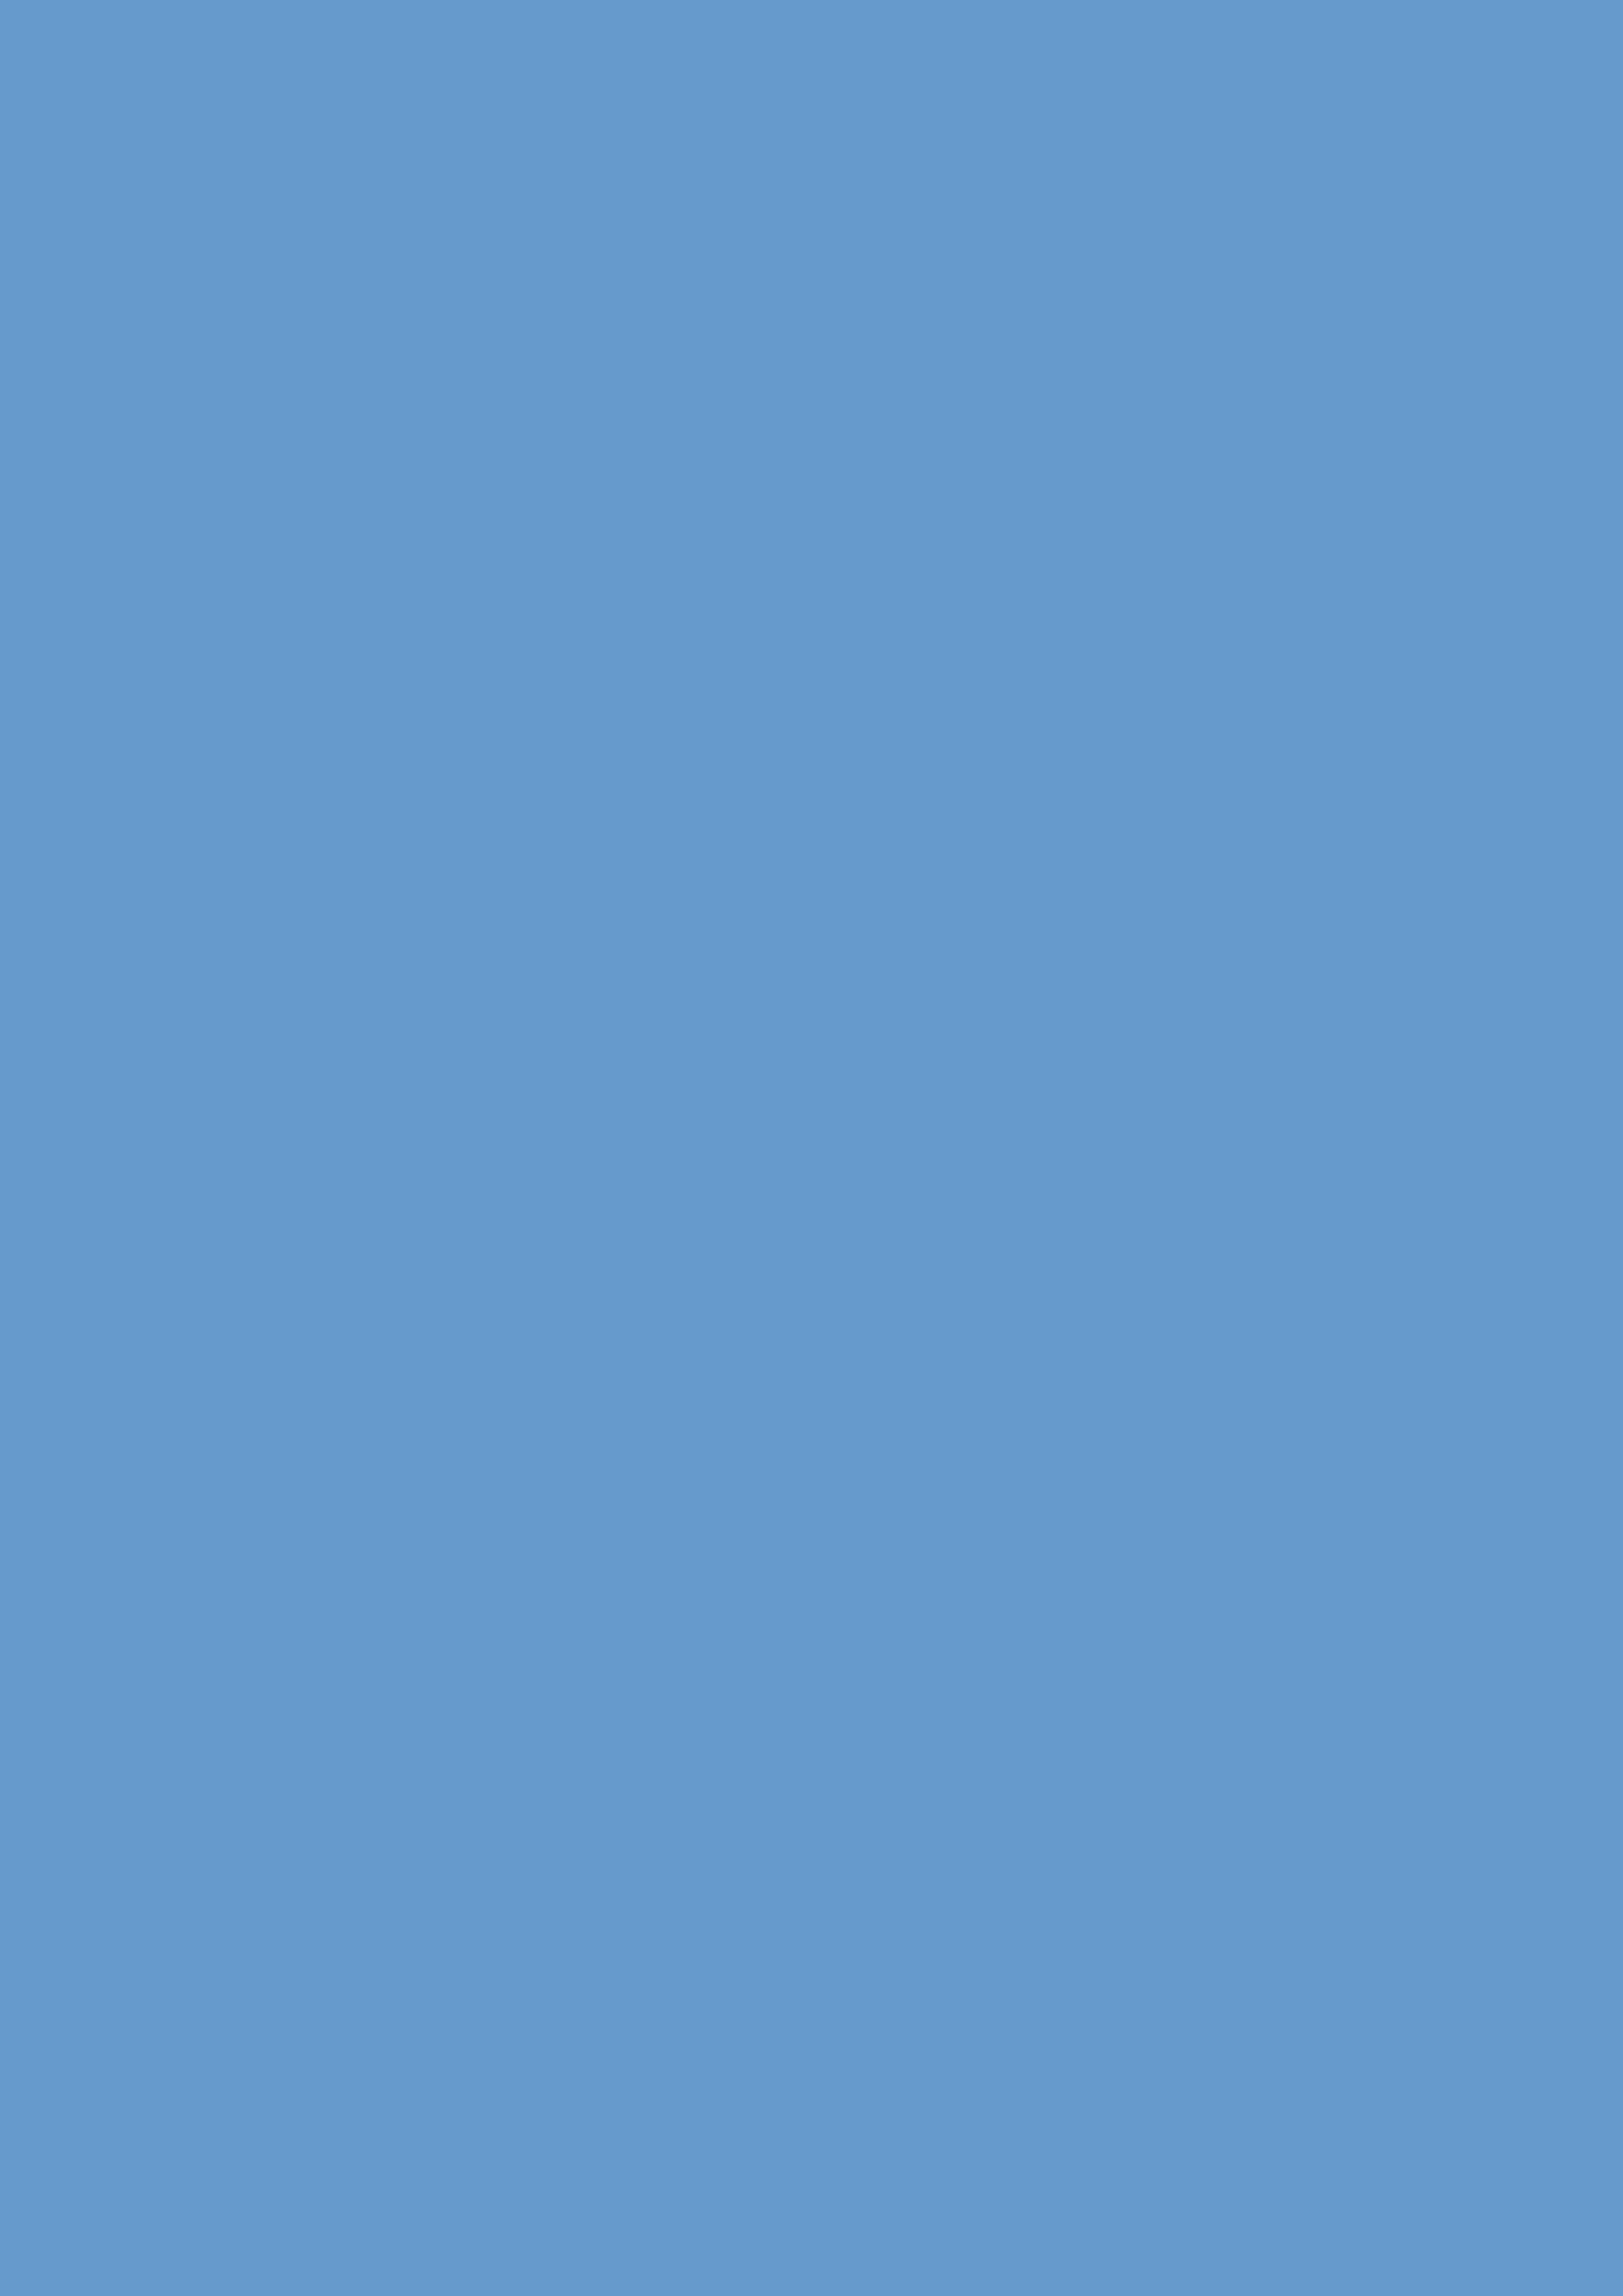 2480x3508 Blue-gray Solid Color Background